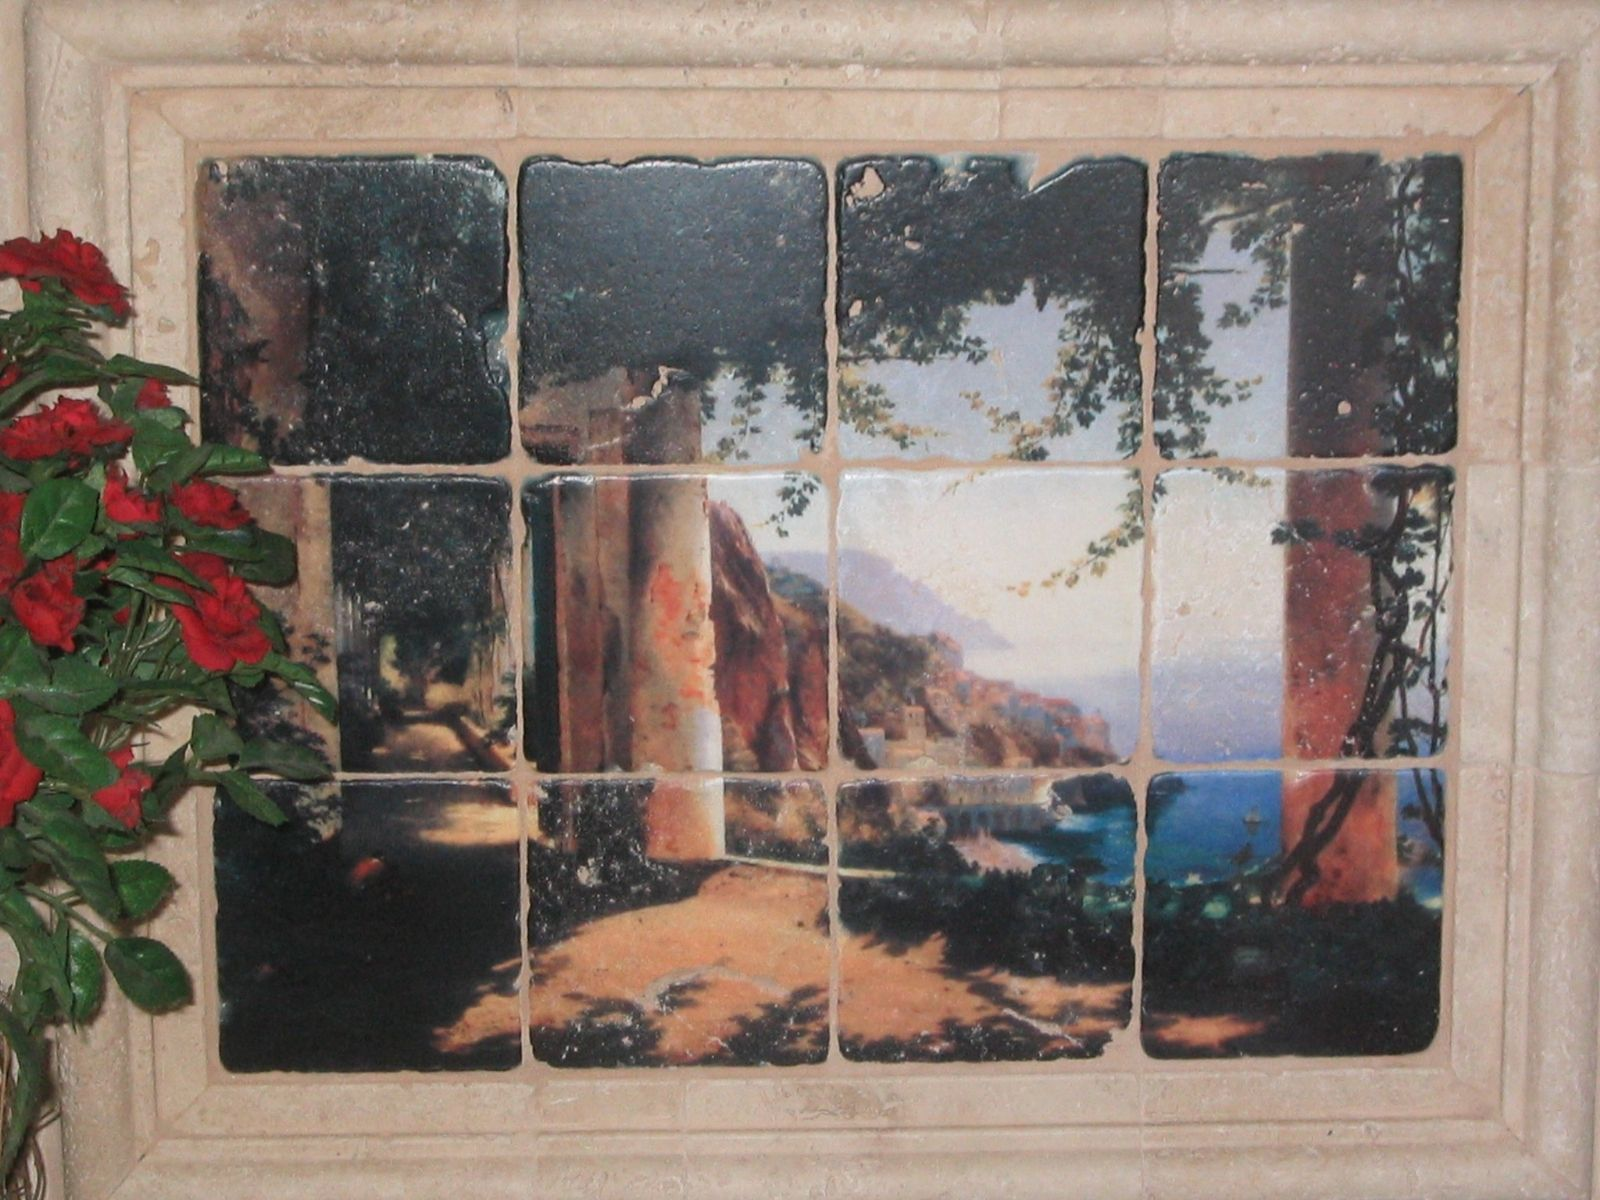 Custom made tumbled marble tile wall mural by flekman art for Custom photo tile mural